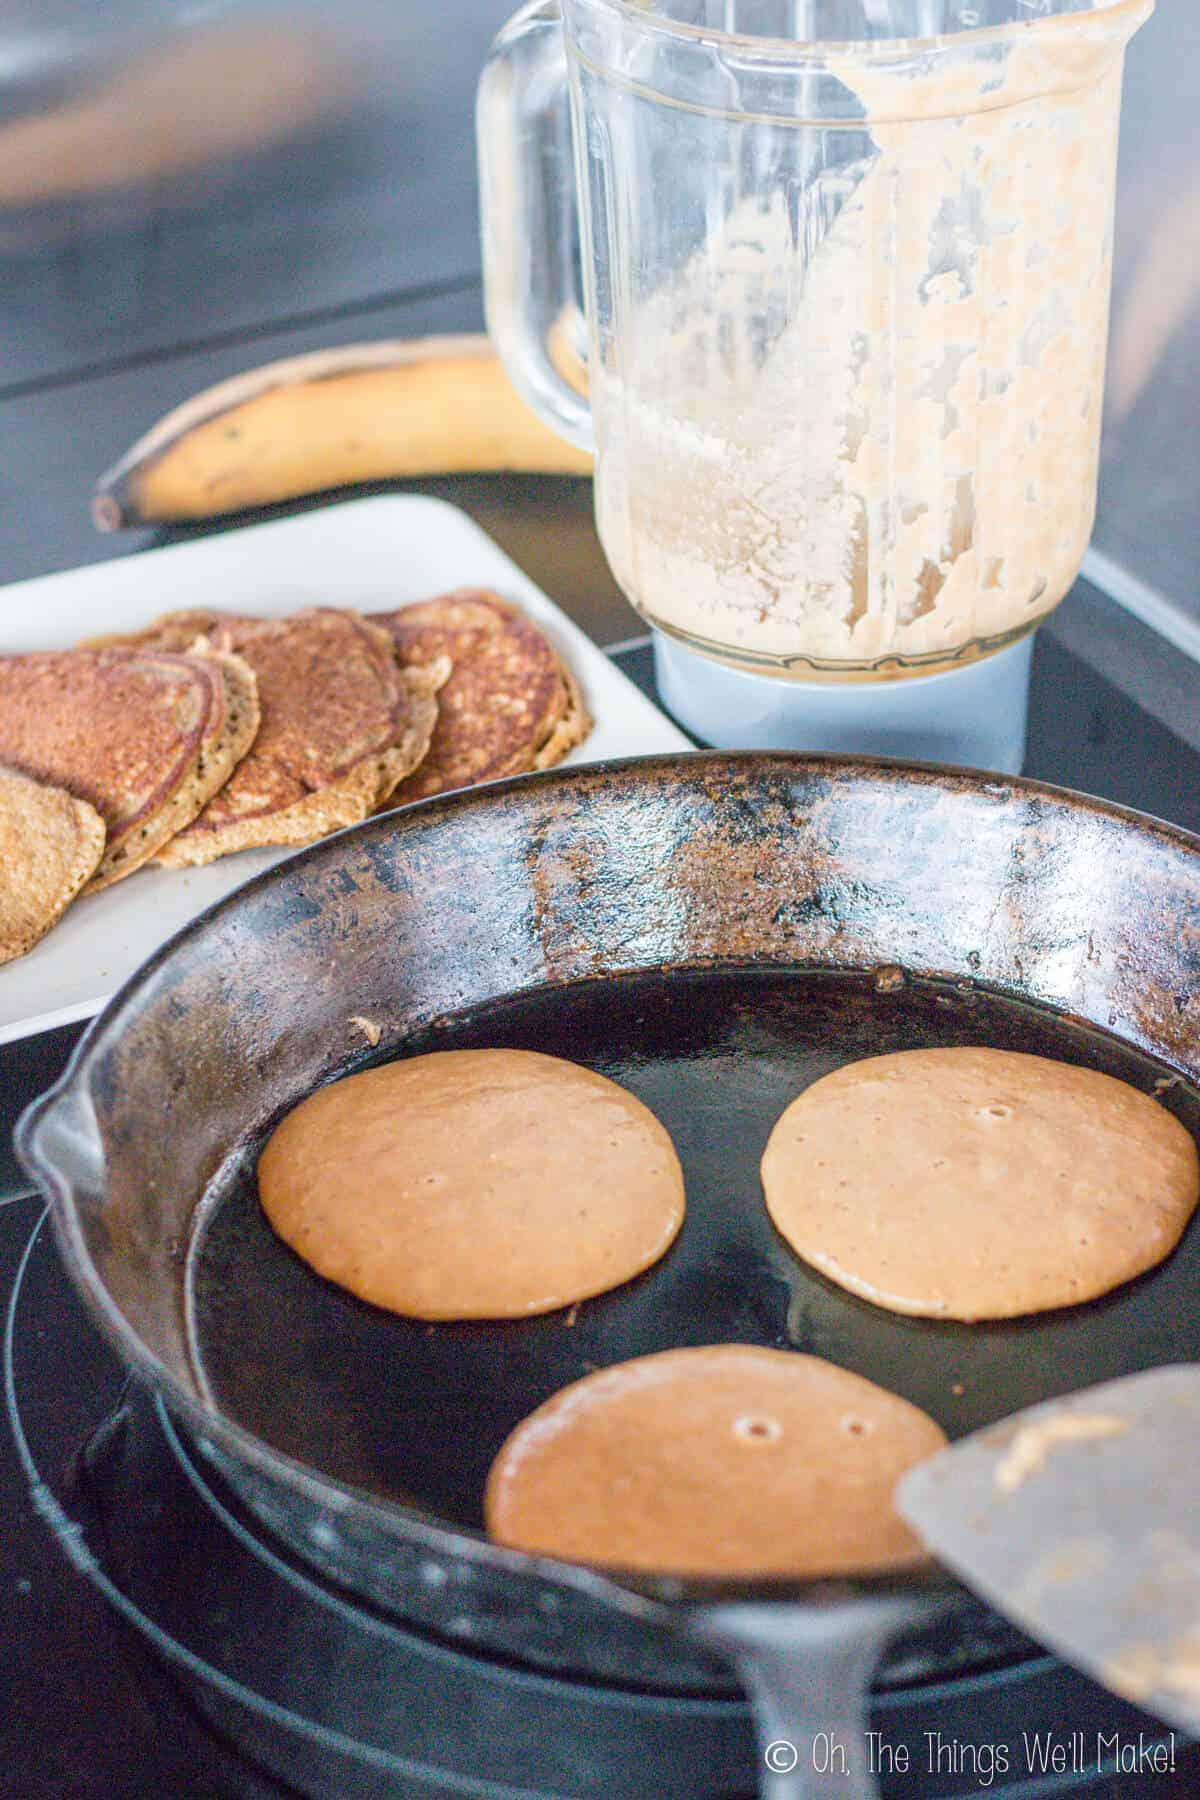 Frying 3 paleo pancakes on a cast iron skillet in front of some already made healthy pancakes.